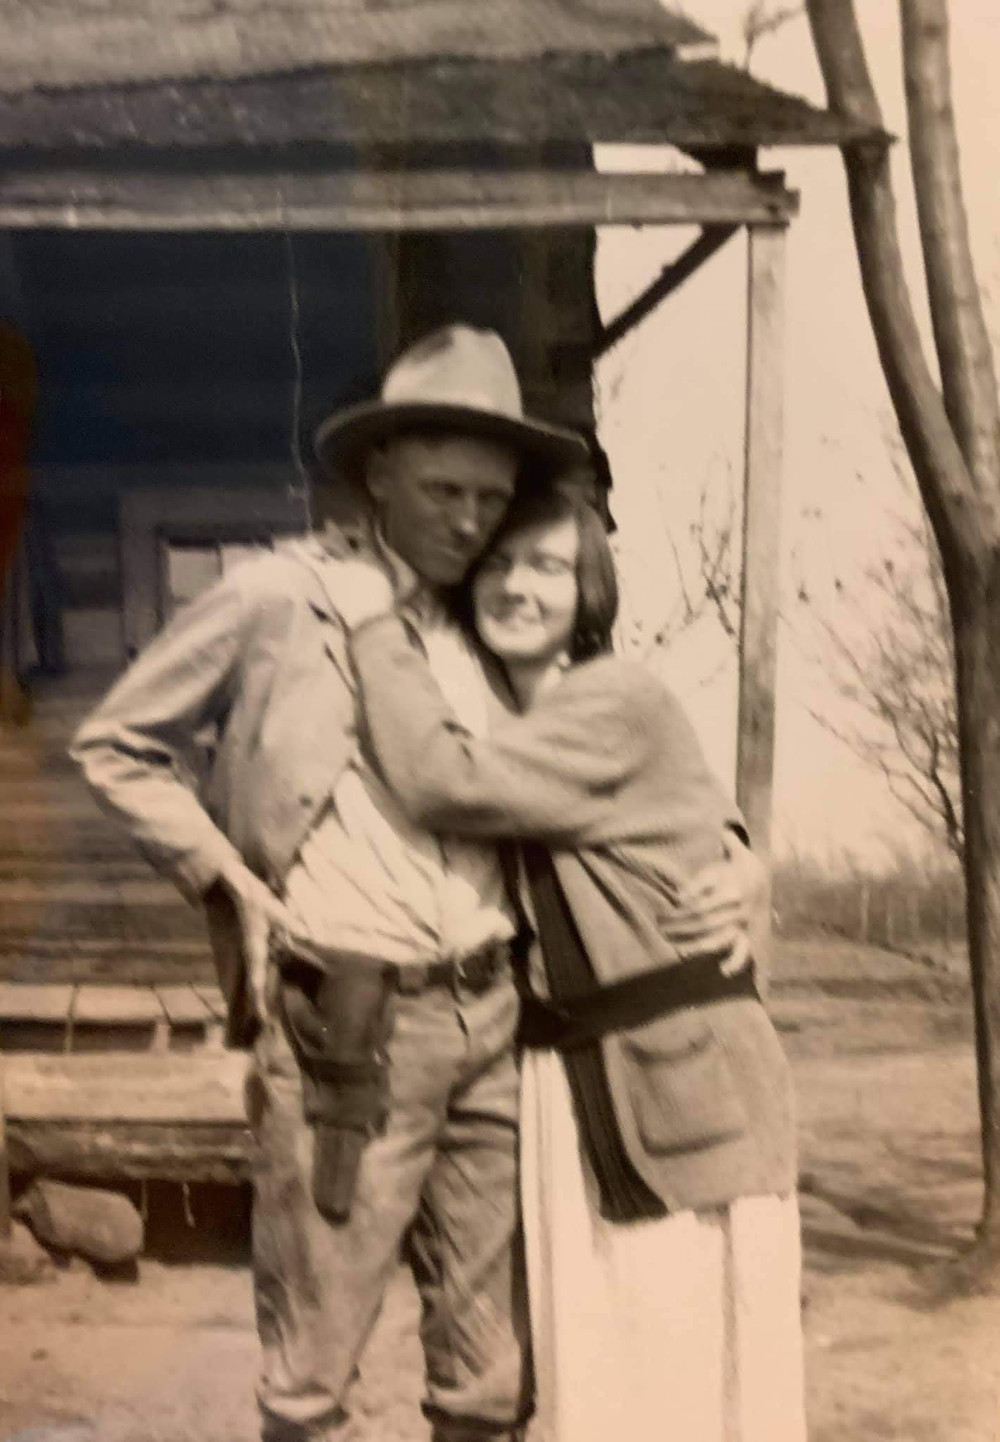 Historic photo of loving couple on East Texas farm. Man has sidearm in holster. Woman hugging man at old farmhouse.